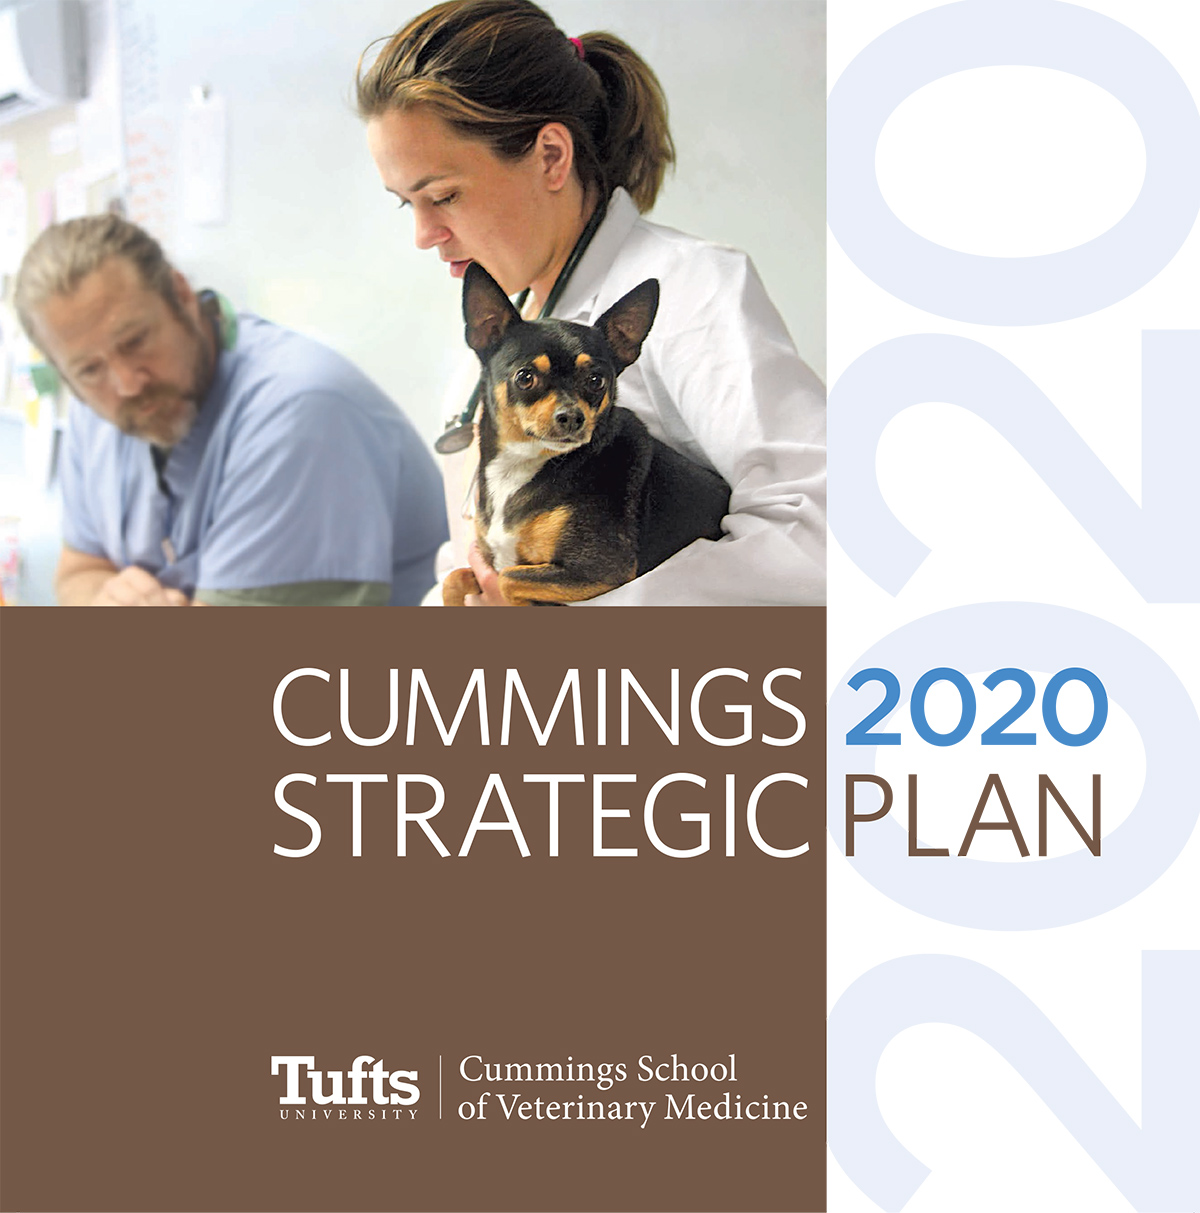 Cummings 2020 Strategic Plan Cover